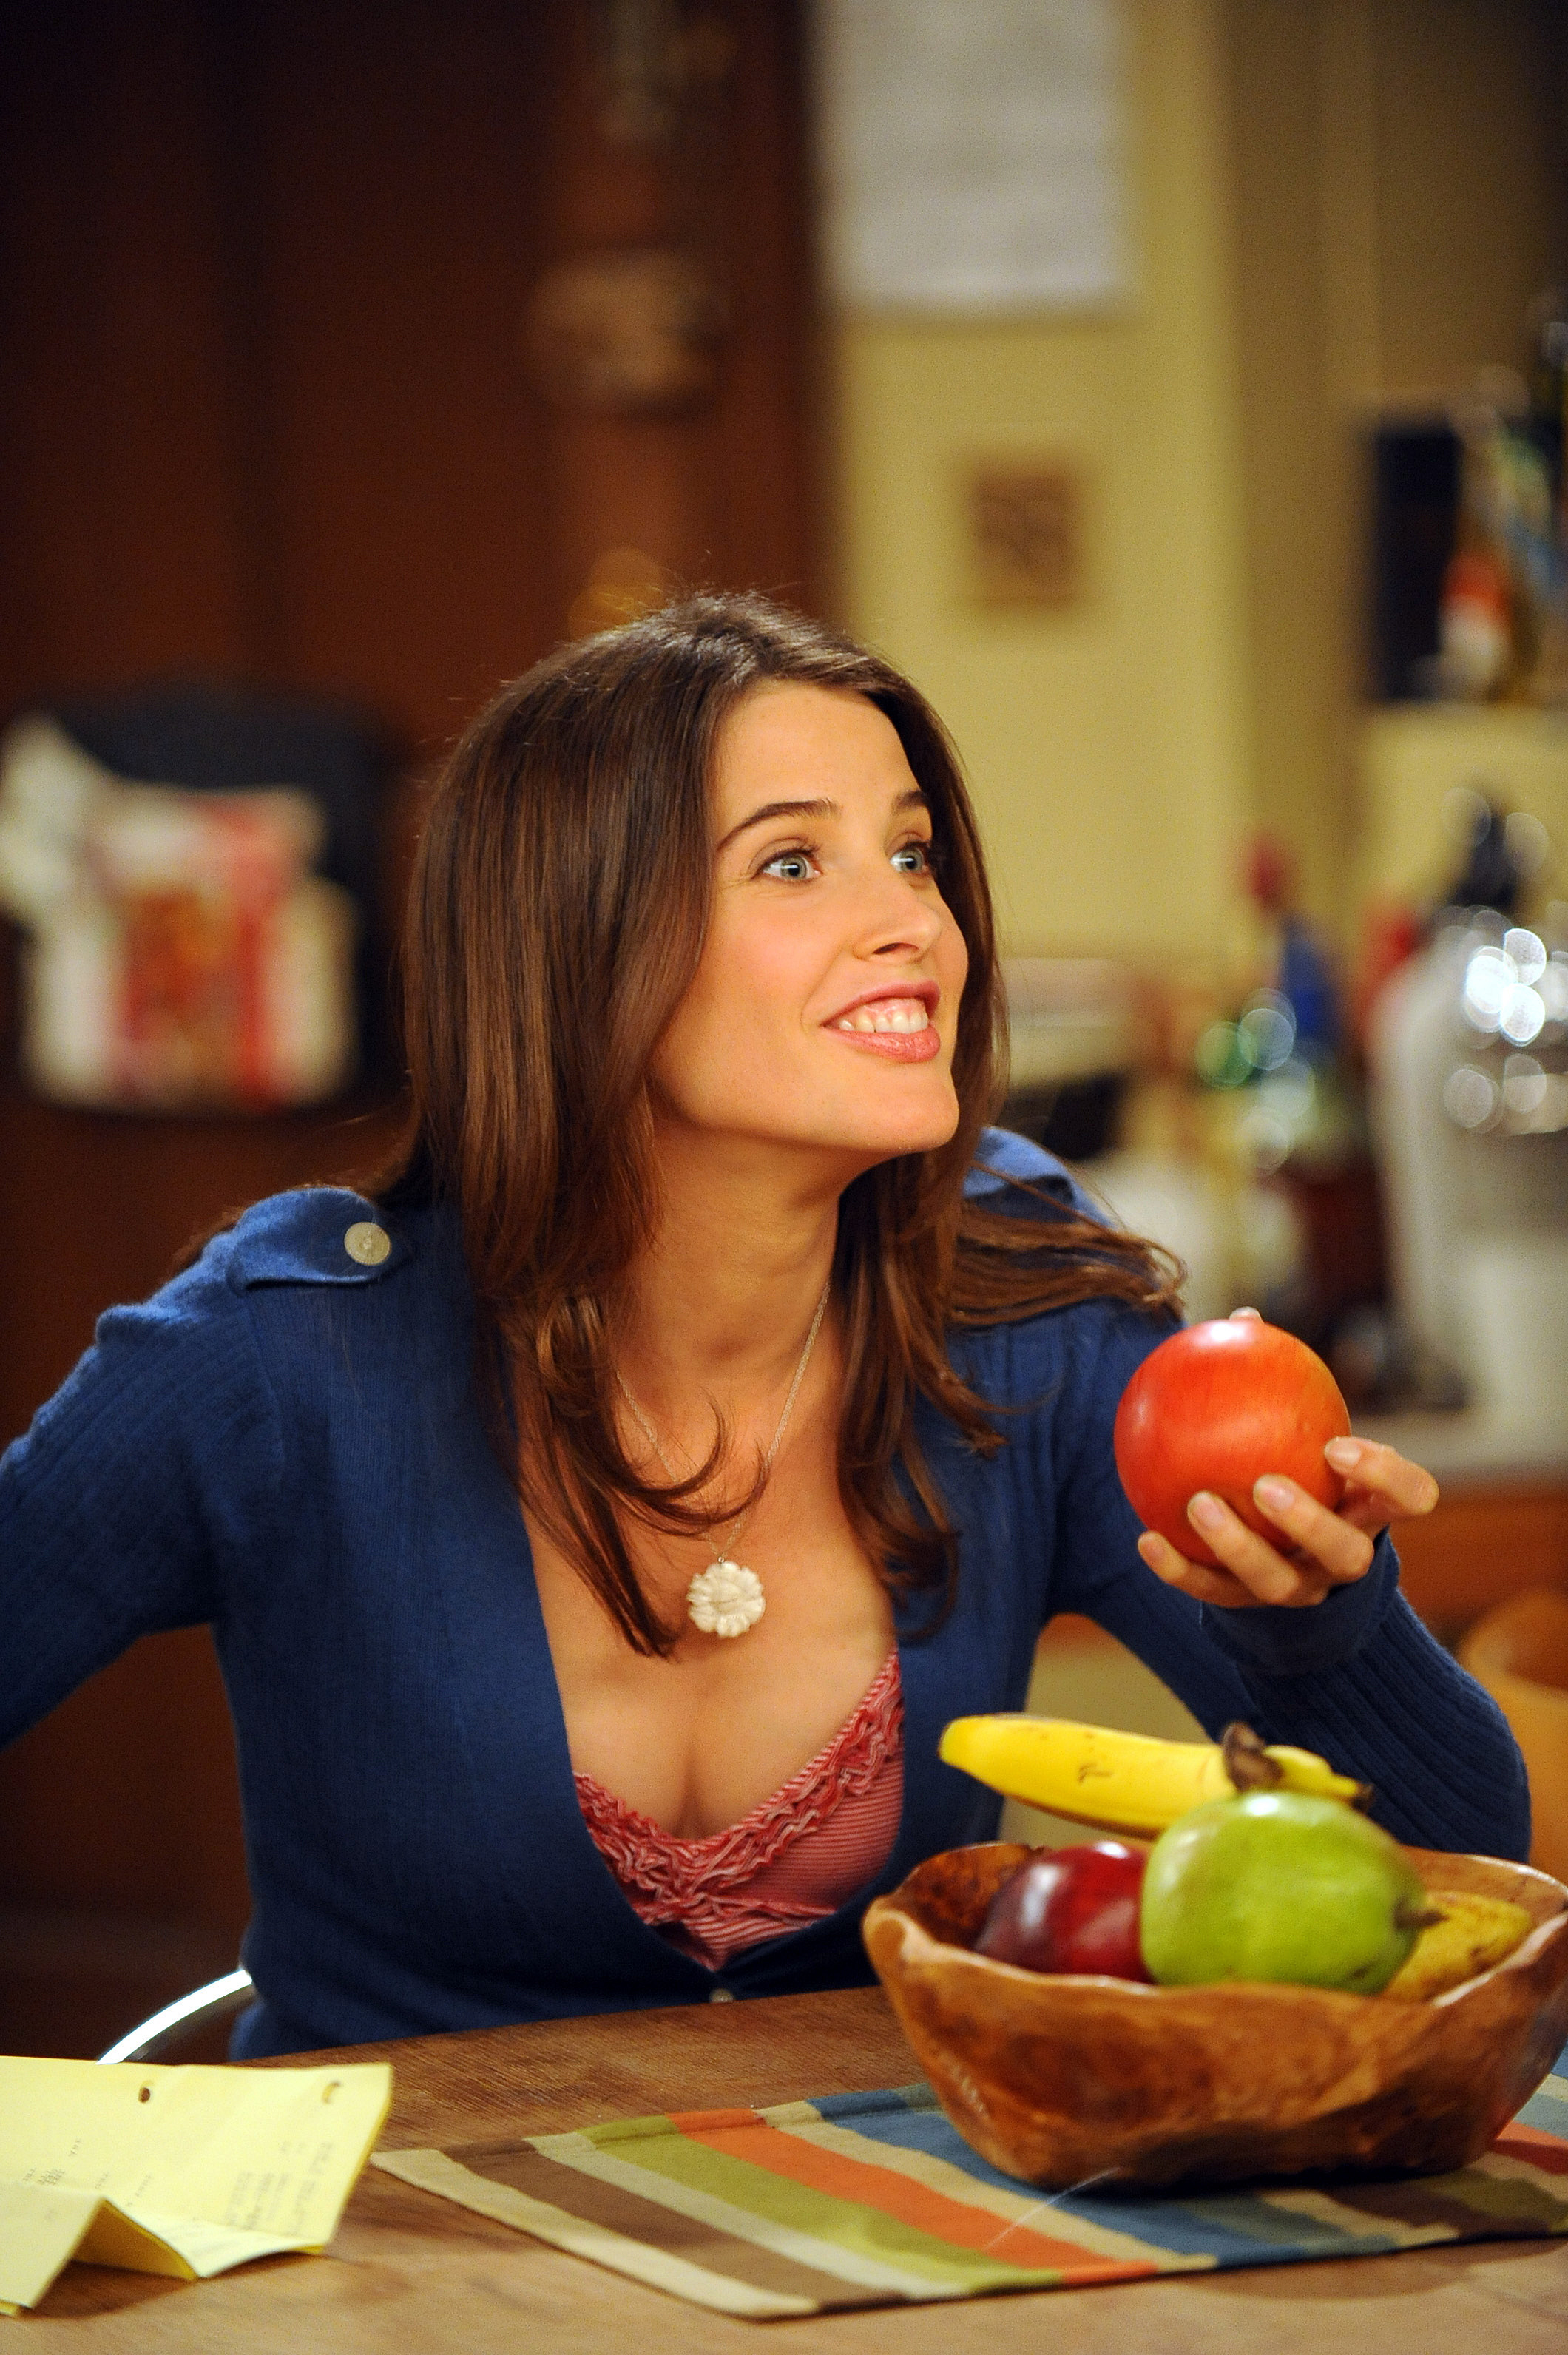 woman bananas cobie smulders HD Wallpaper